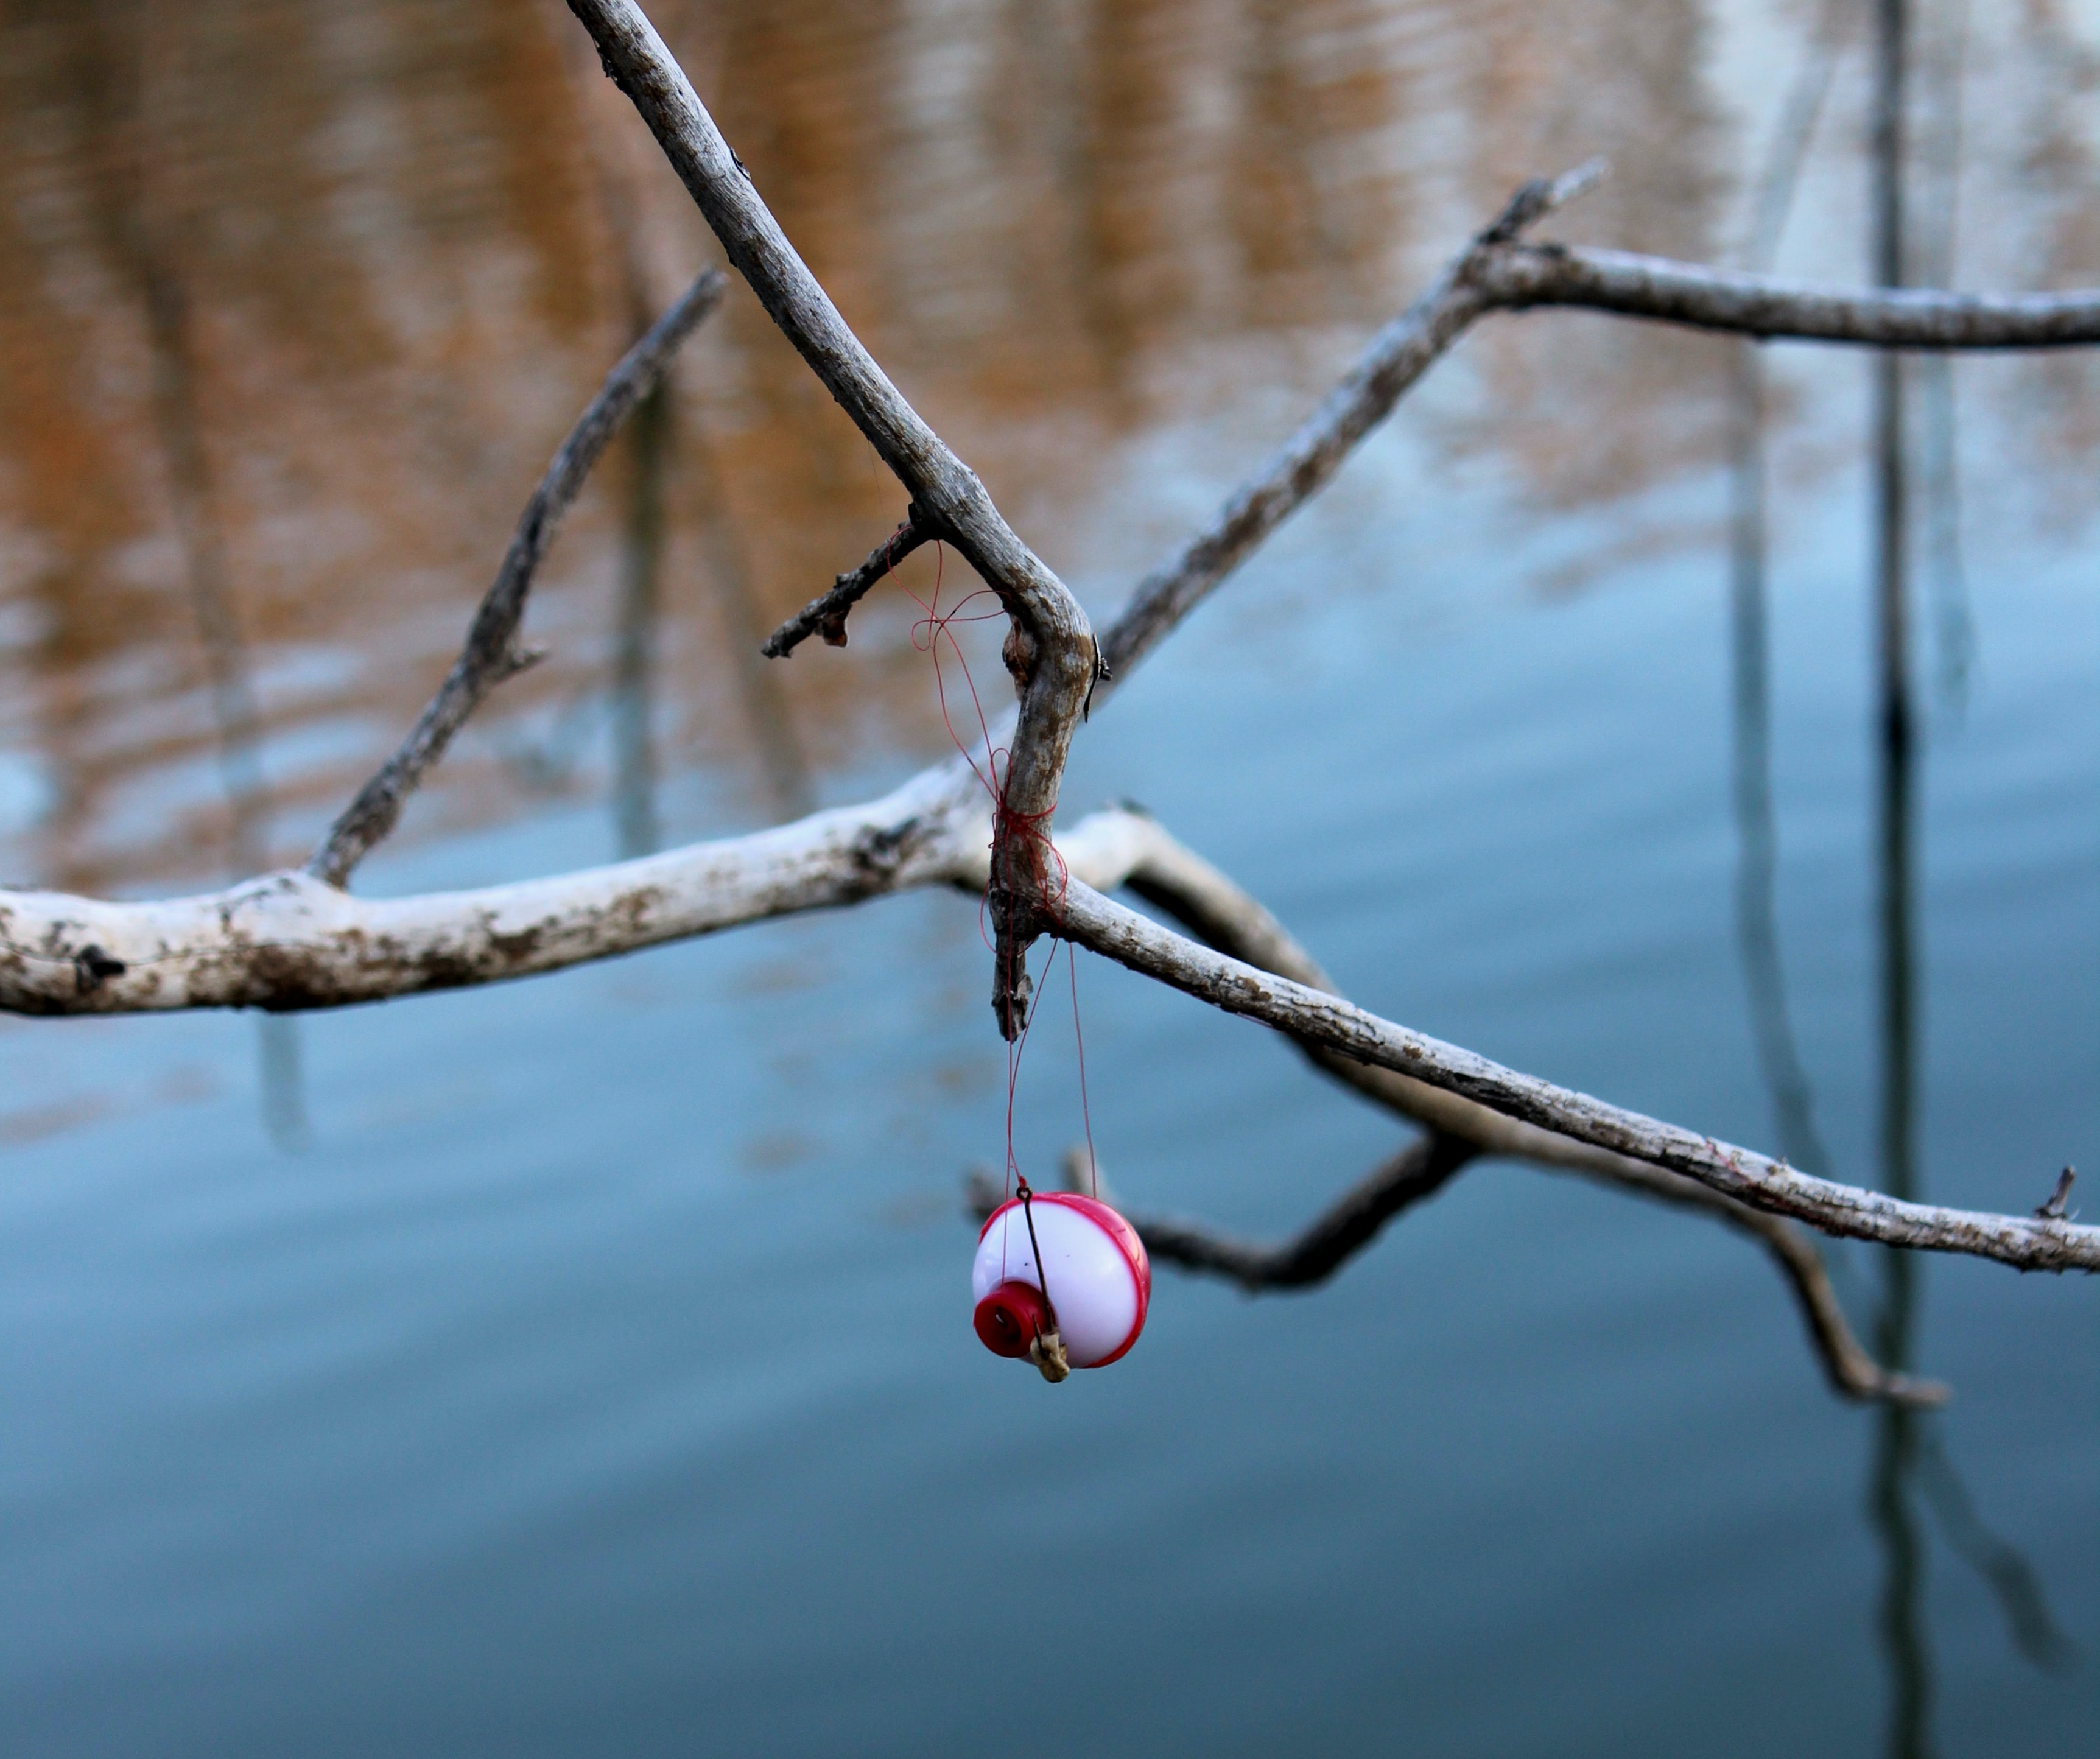 fishing lure on branch